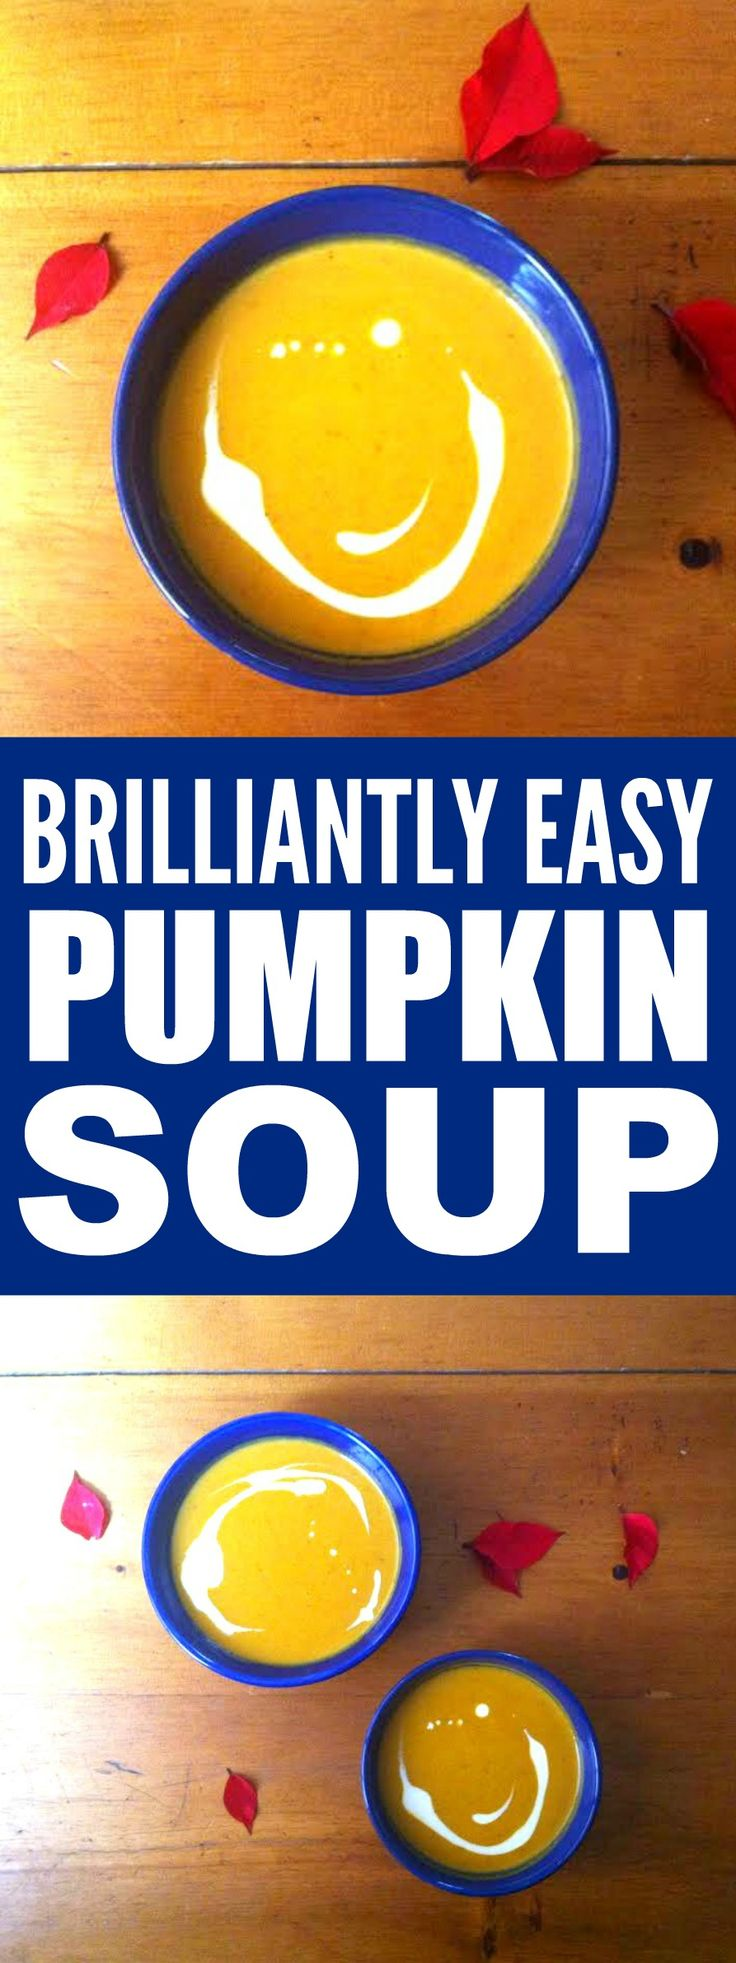 This Pumpkin Soup Recipe is THE BEST! I'm so glad I found these GREAT soup! Now I can impress my friends and family! Definitely pinning!